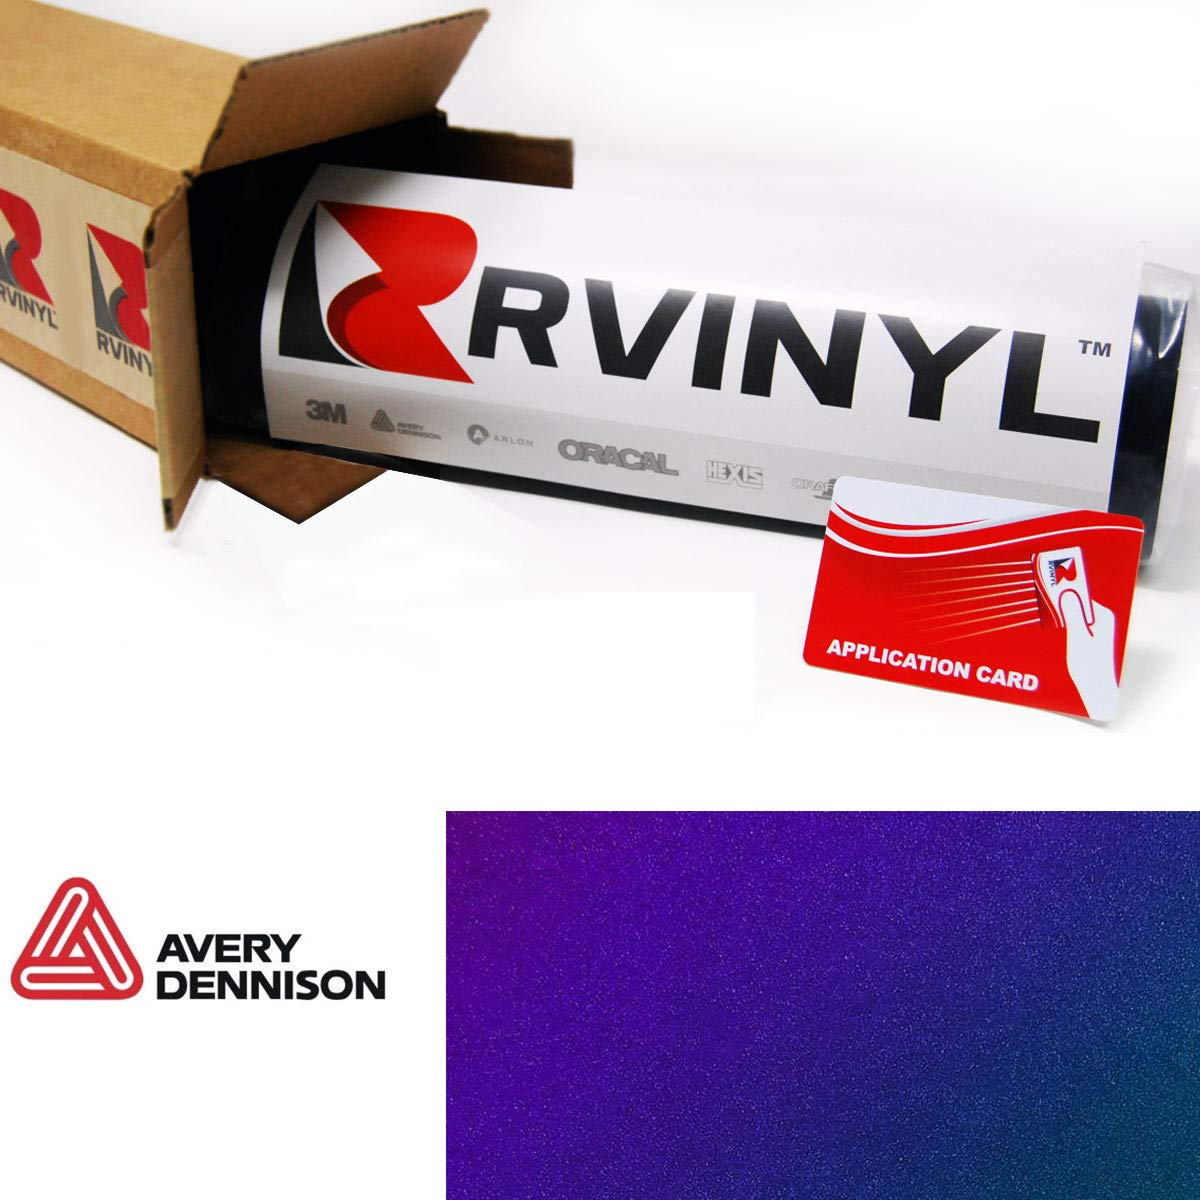 """Avery SW900 674-S ColorFlow Gloss Rushing Riptide Supreme Wrapping Film Vinyl Vehicle Car Wrap Sheet Roll - (12"""" x 60"""" w/Application Card)"""